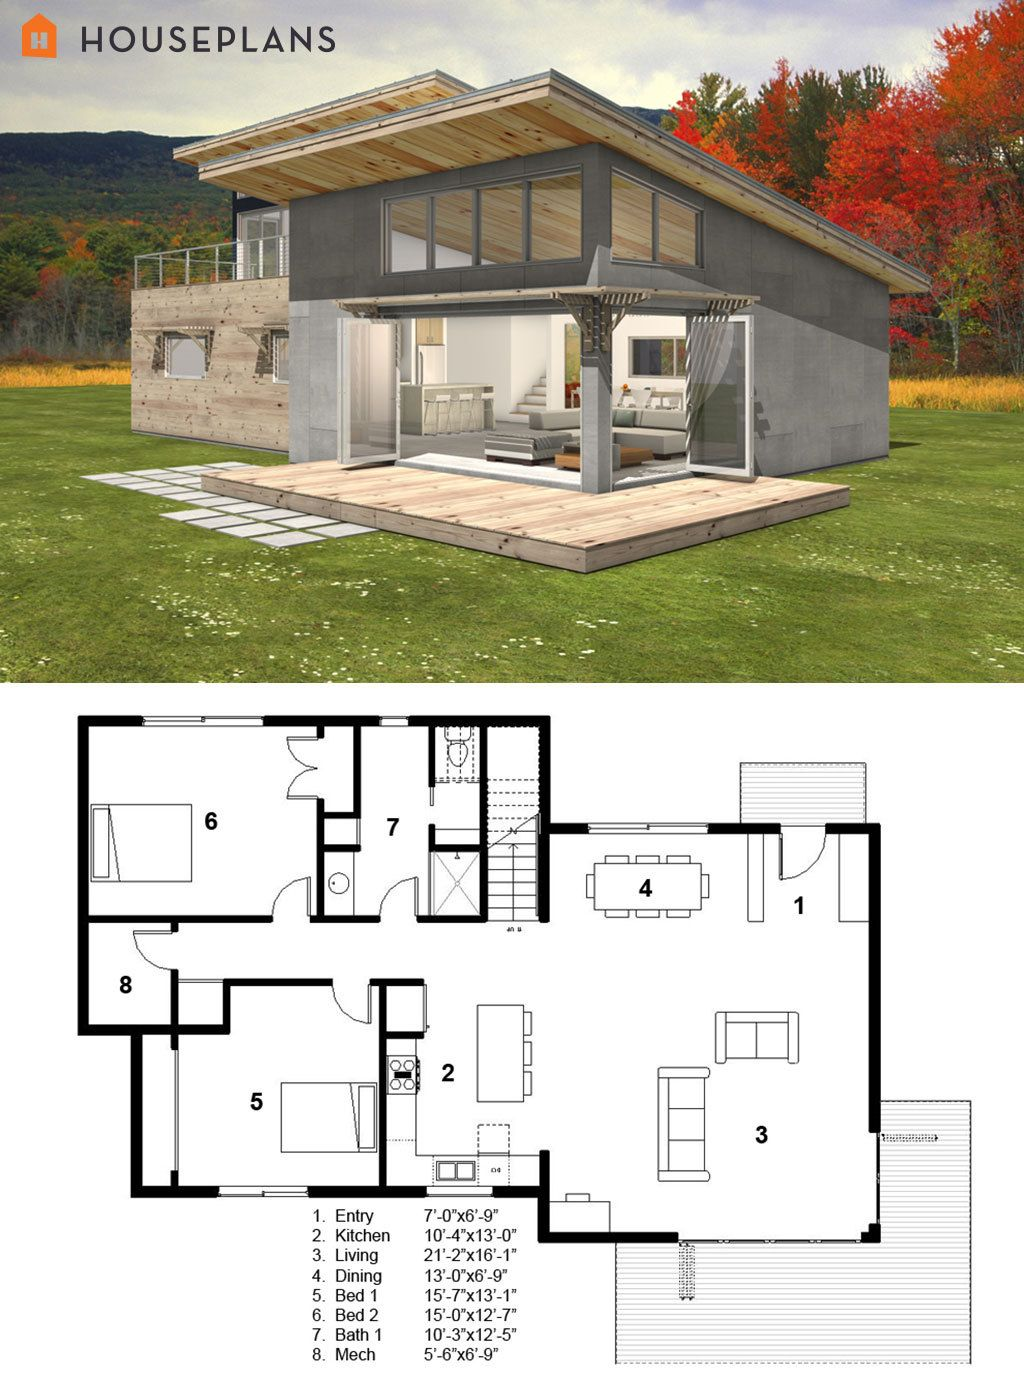 Small modern cabin house plan by freegreen energy for Modern house plans with photos